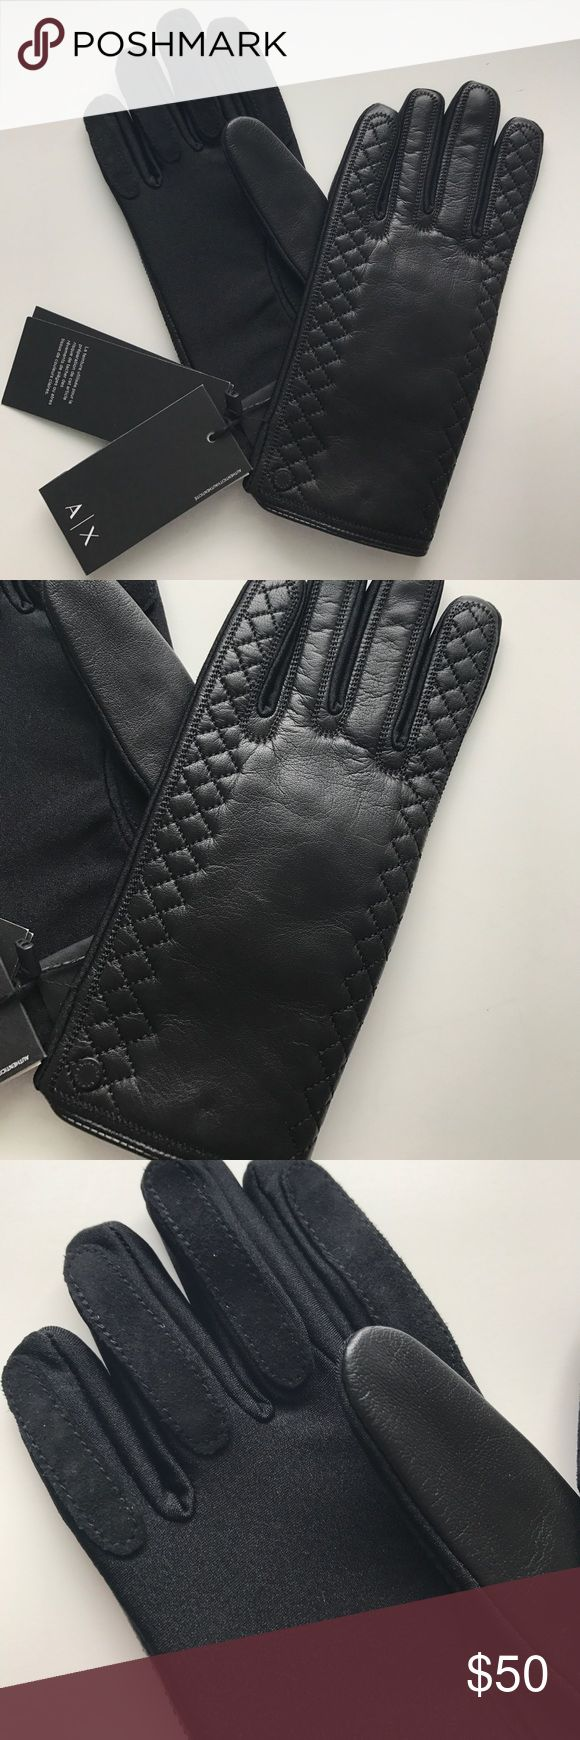 Armani exchange black leather gloves - Women S Armani Exchange Black Leather Gloves Brand New With Tags Armani Exchange Black Leather Gloves